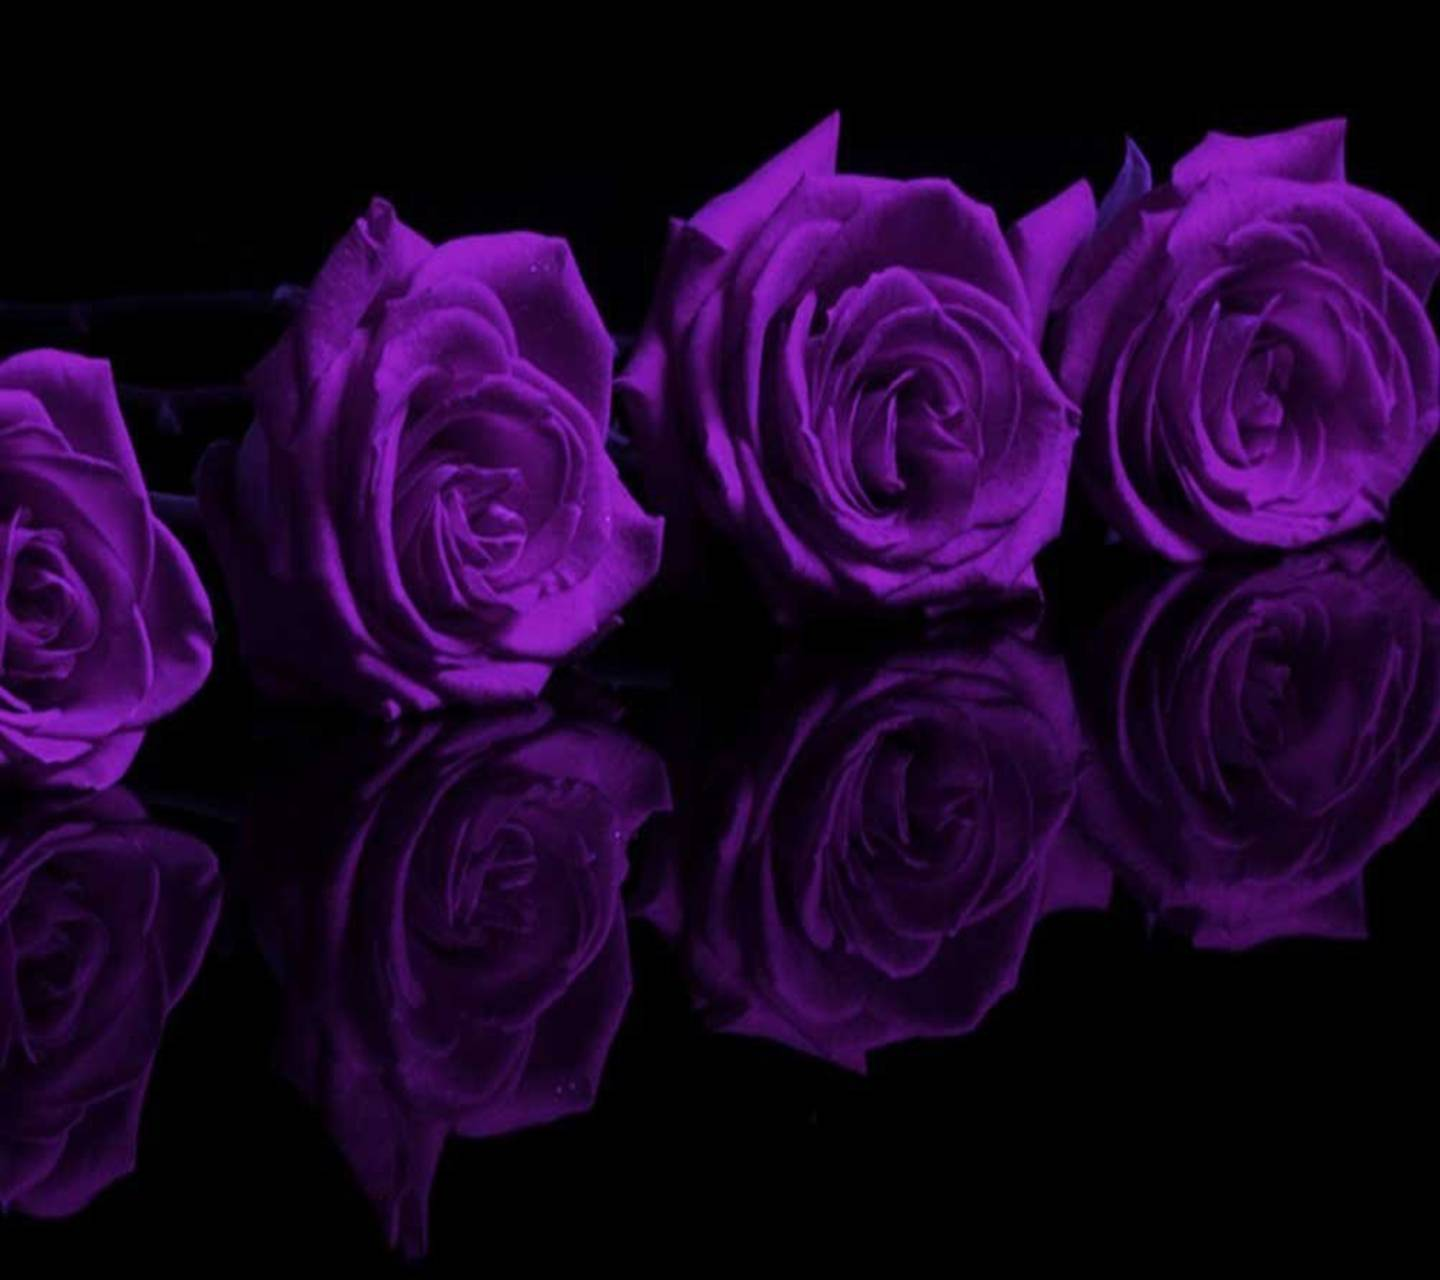 roses reflection